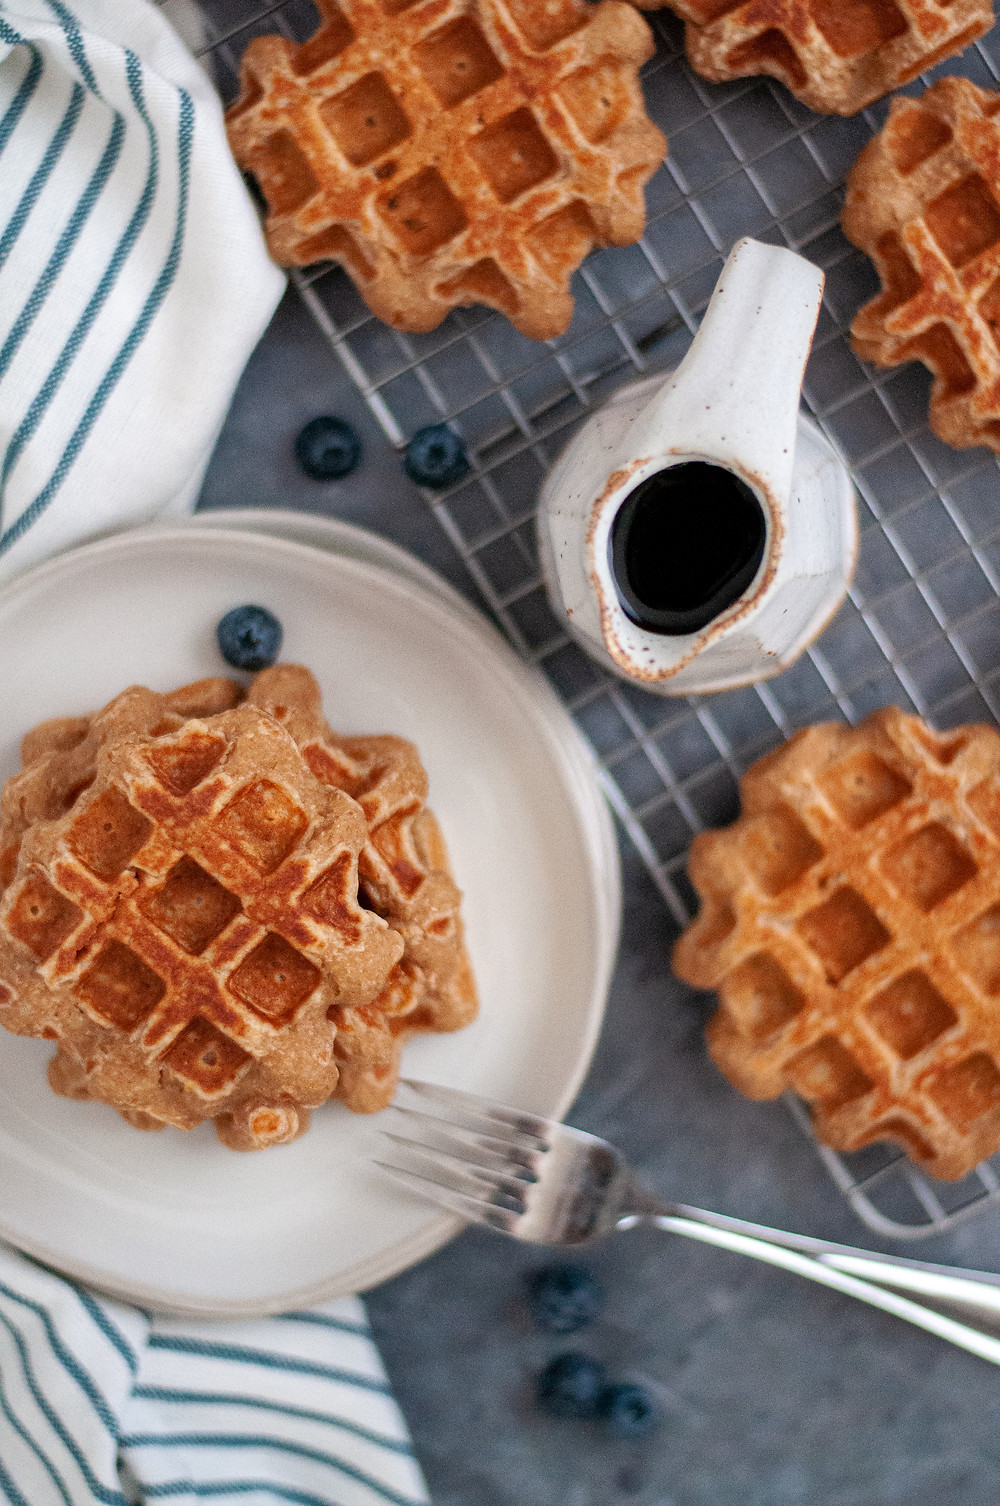 Top down view of a plate of waffles next to a pitcher of maple syrup